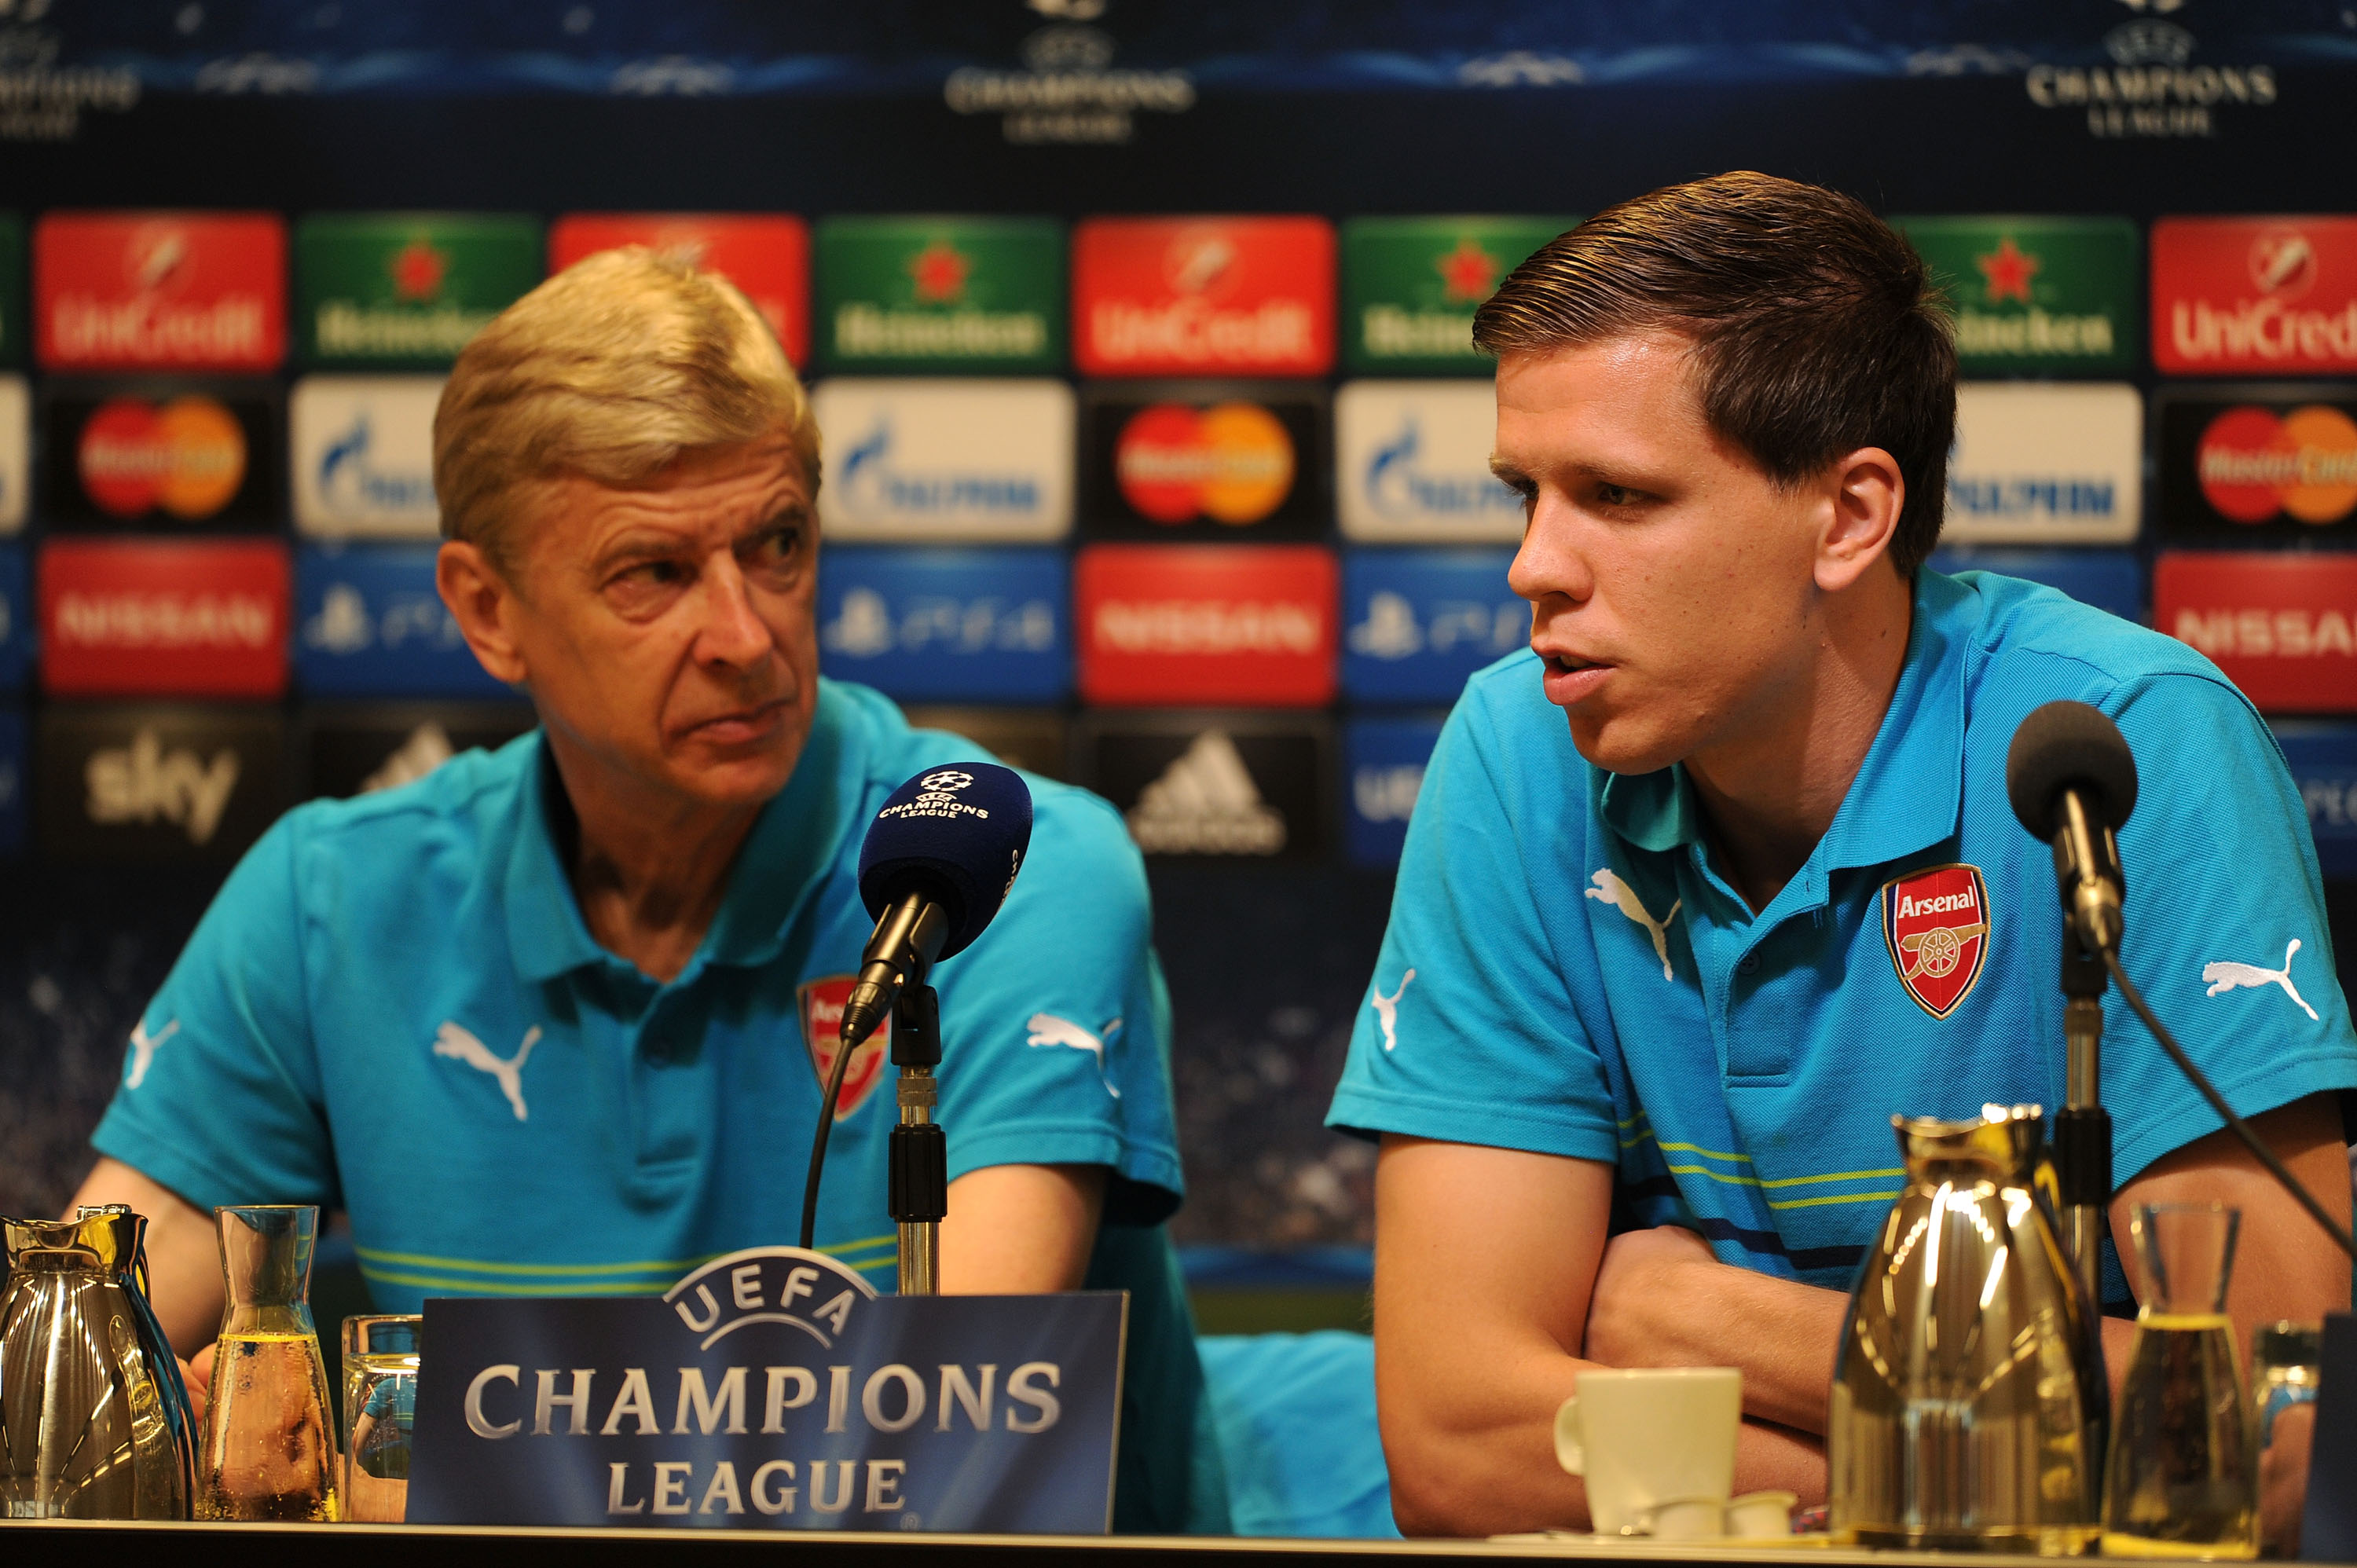 Wojciech Szczesny claims he never improved under Arsene Wenger at Arsenal